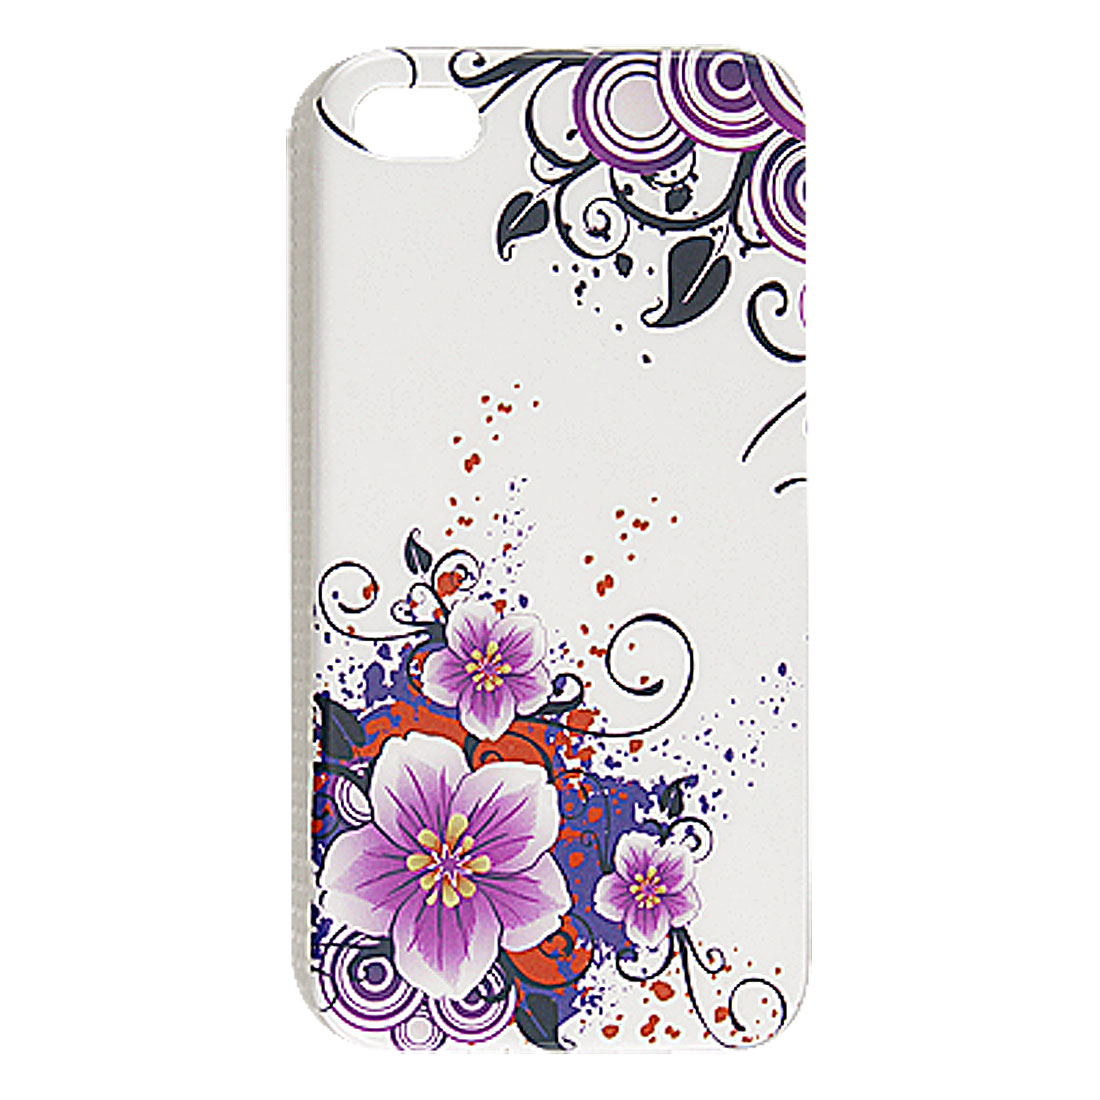 Purple Flower Hard Plastic IMD Back Case Shell for iPhone 4S